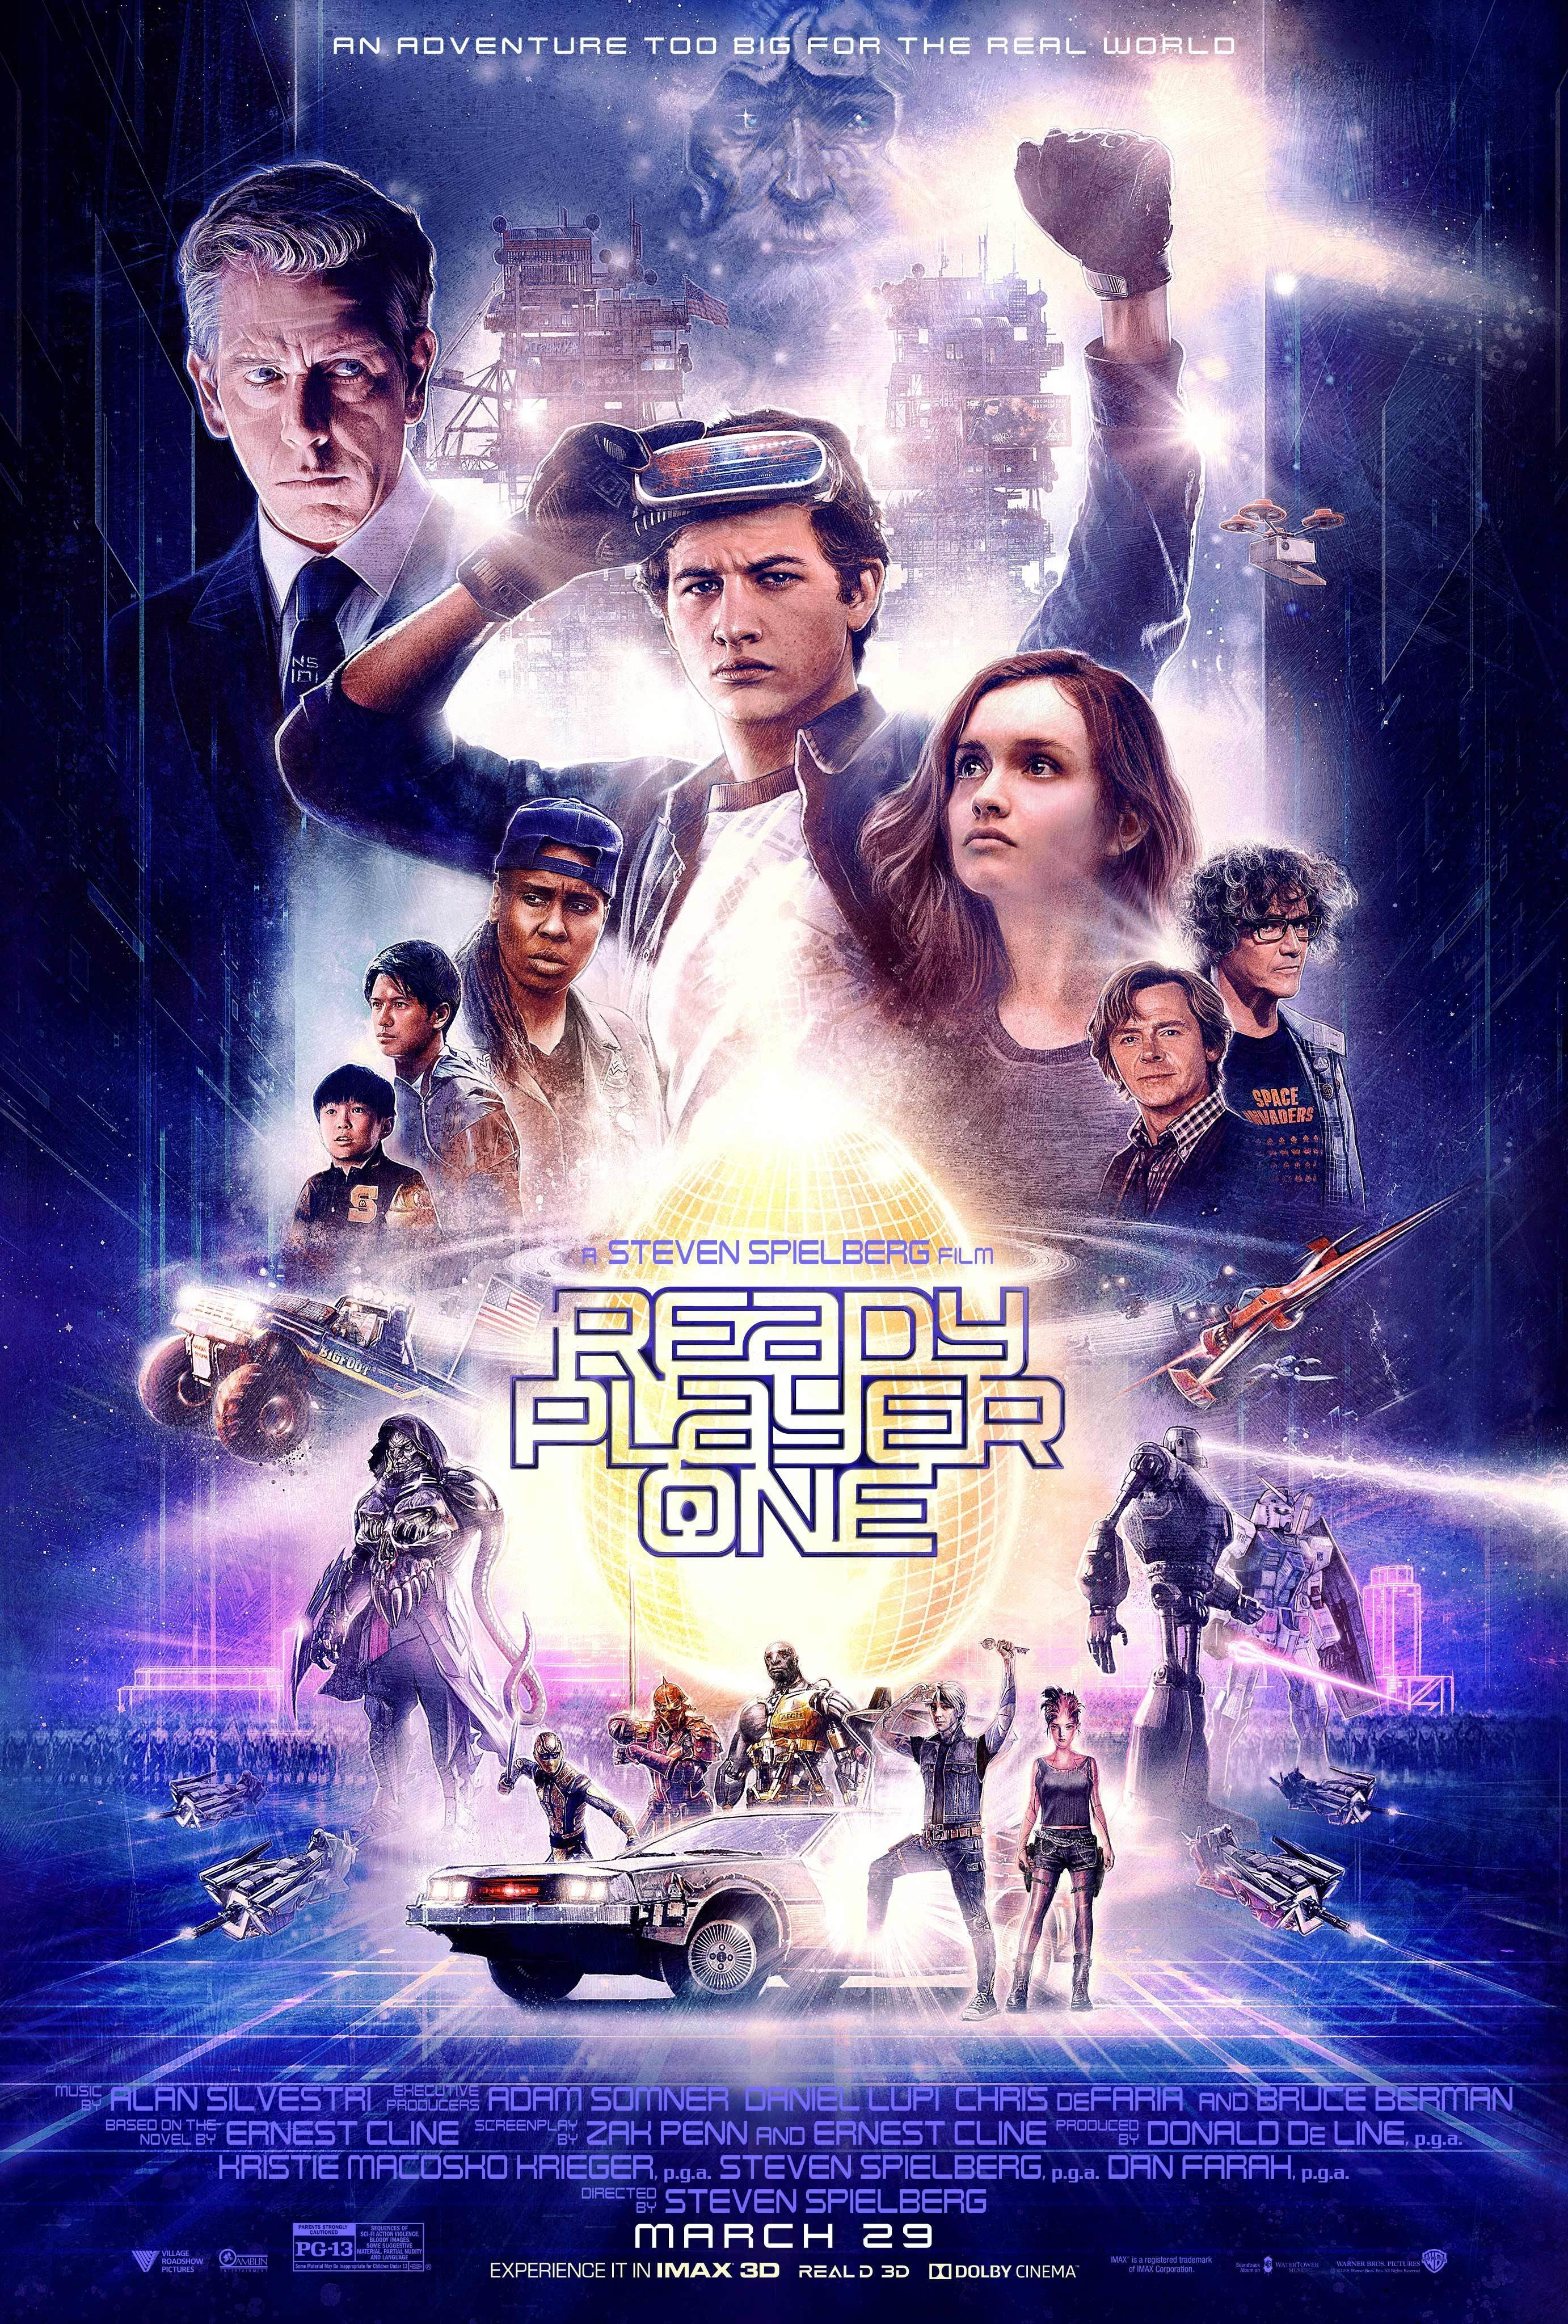 Ready Player One 头号玩家